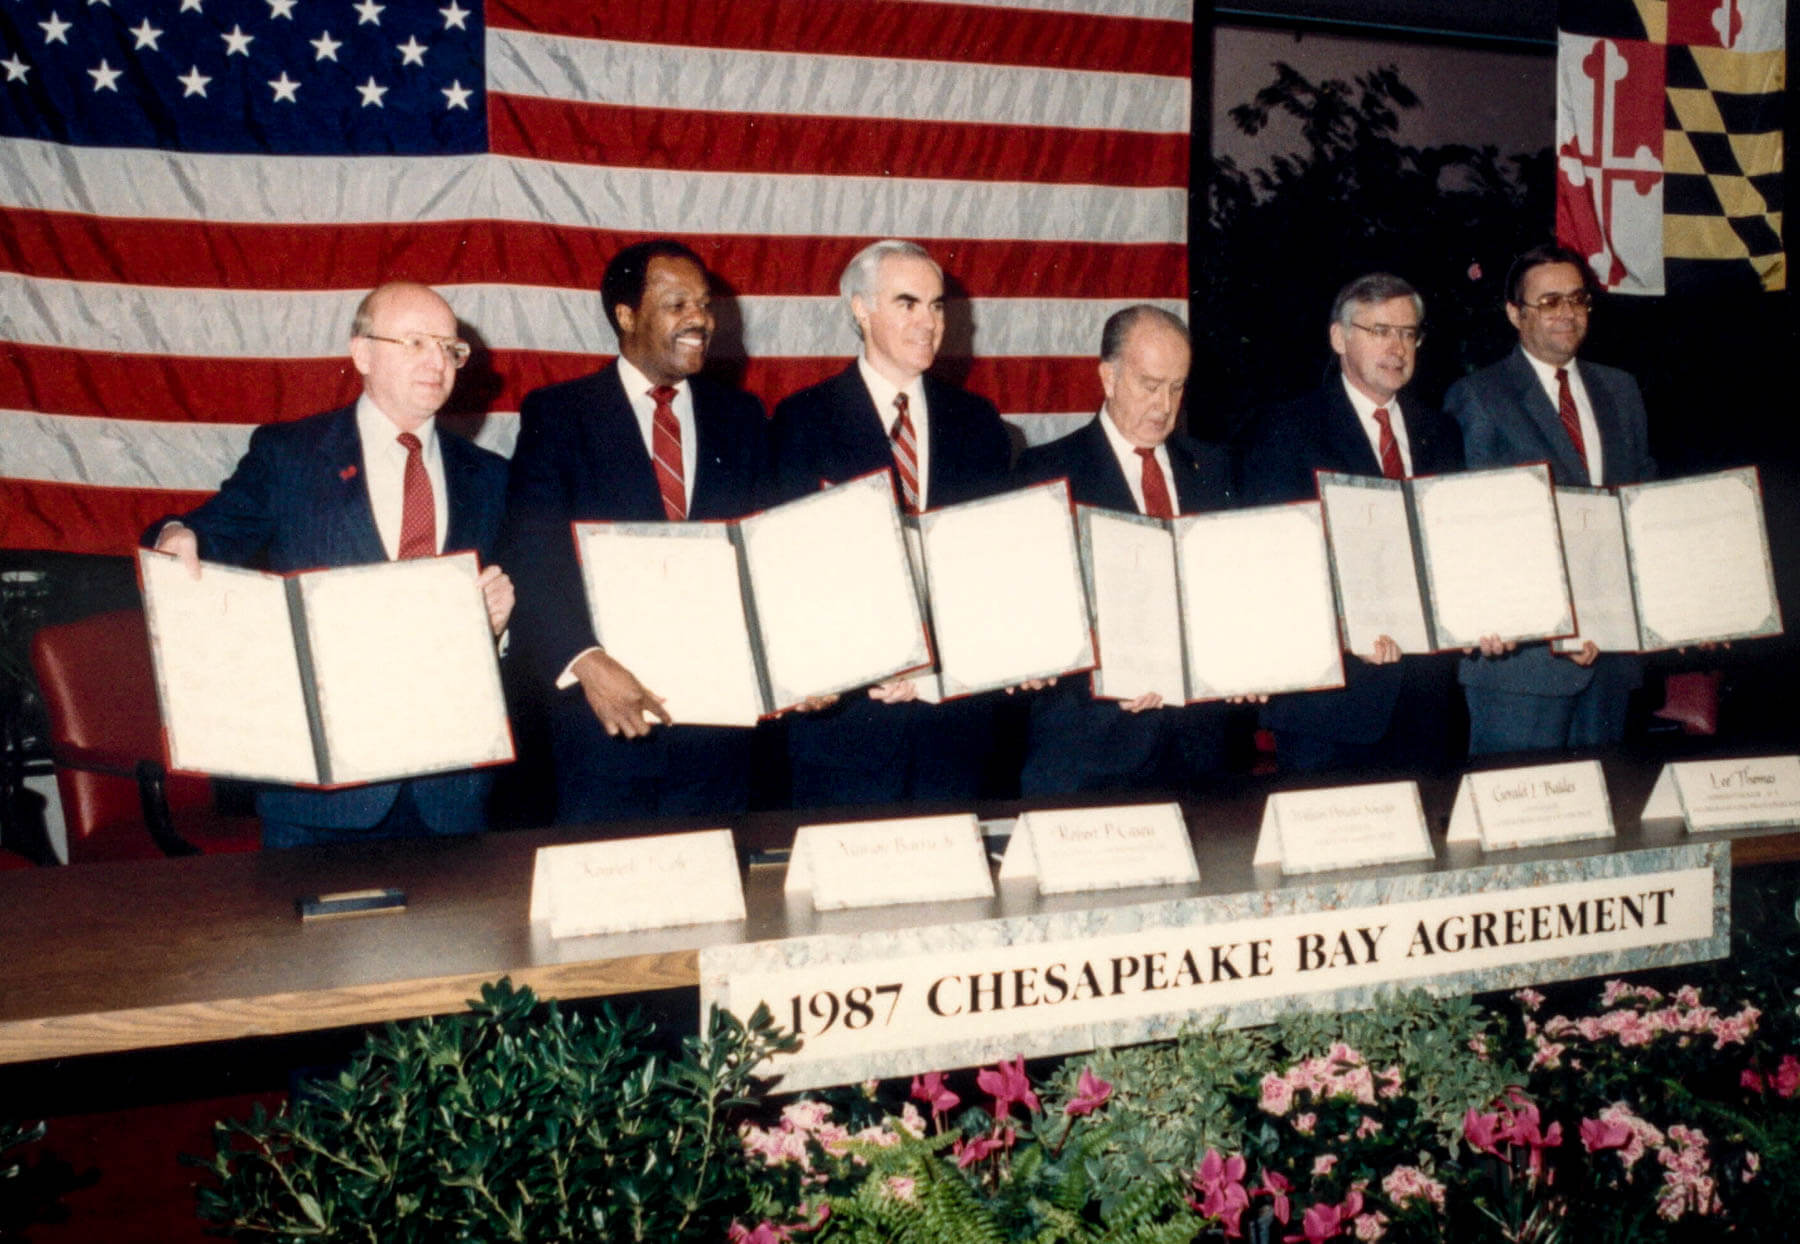 Picture of the 1987 Chesapeake Bay Agreement